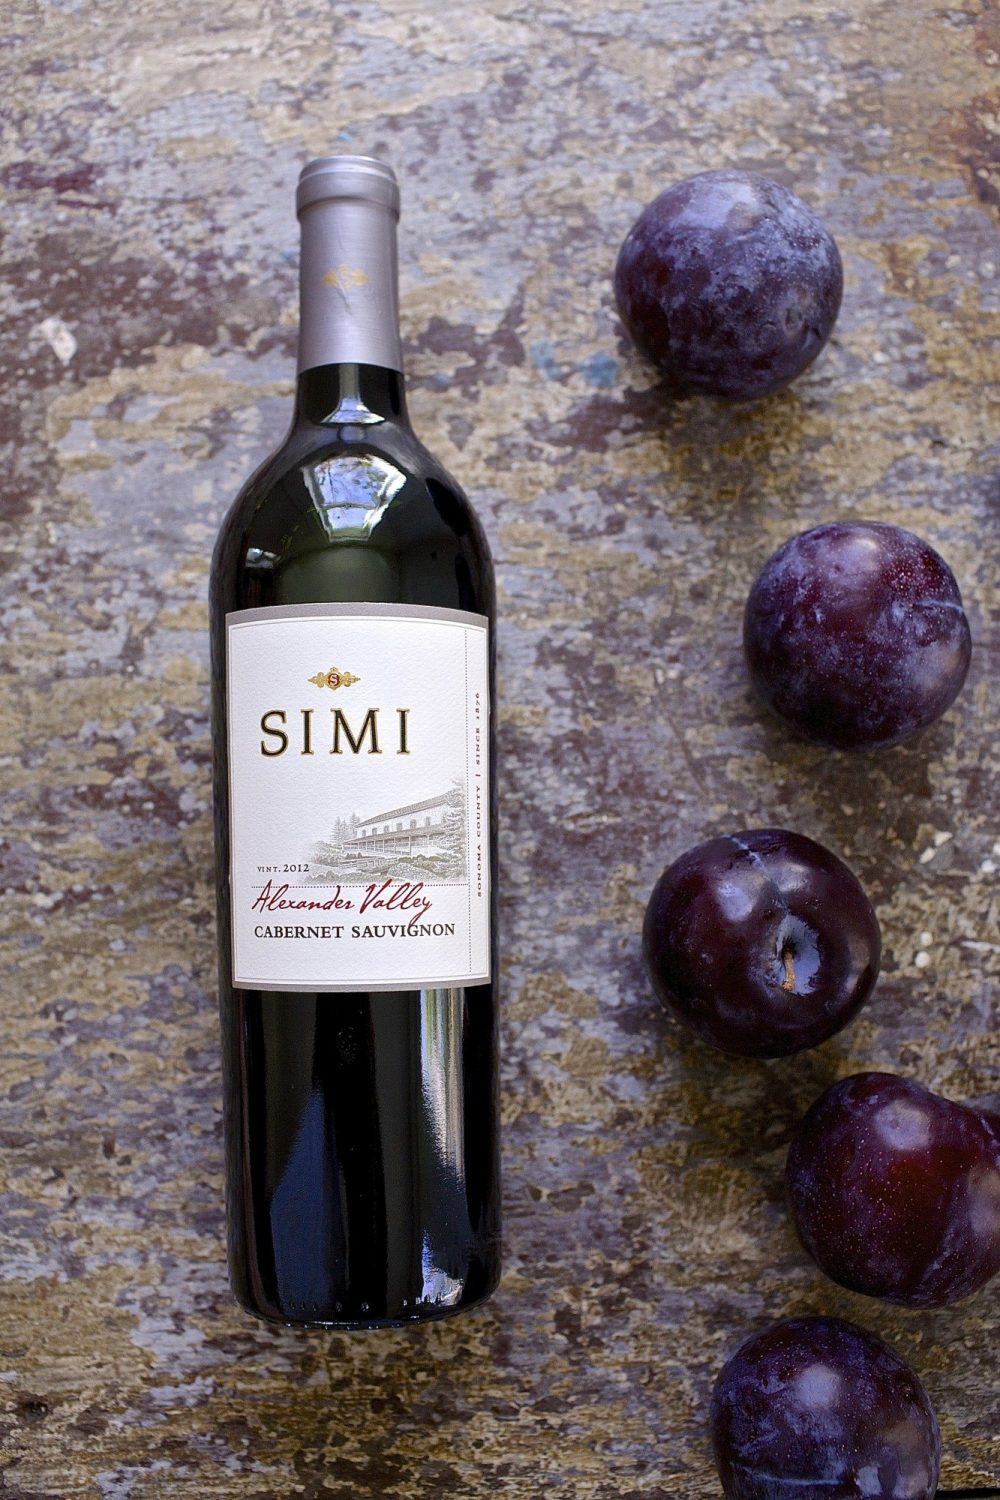 Kick off Fall with this SIMI Cabernet Sauvignon-Infused Plum Butter Recipe!